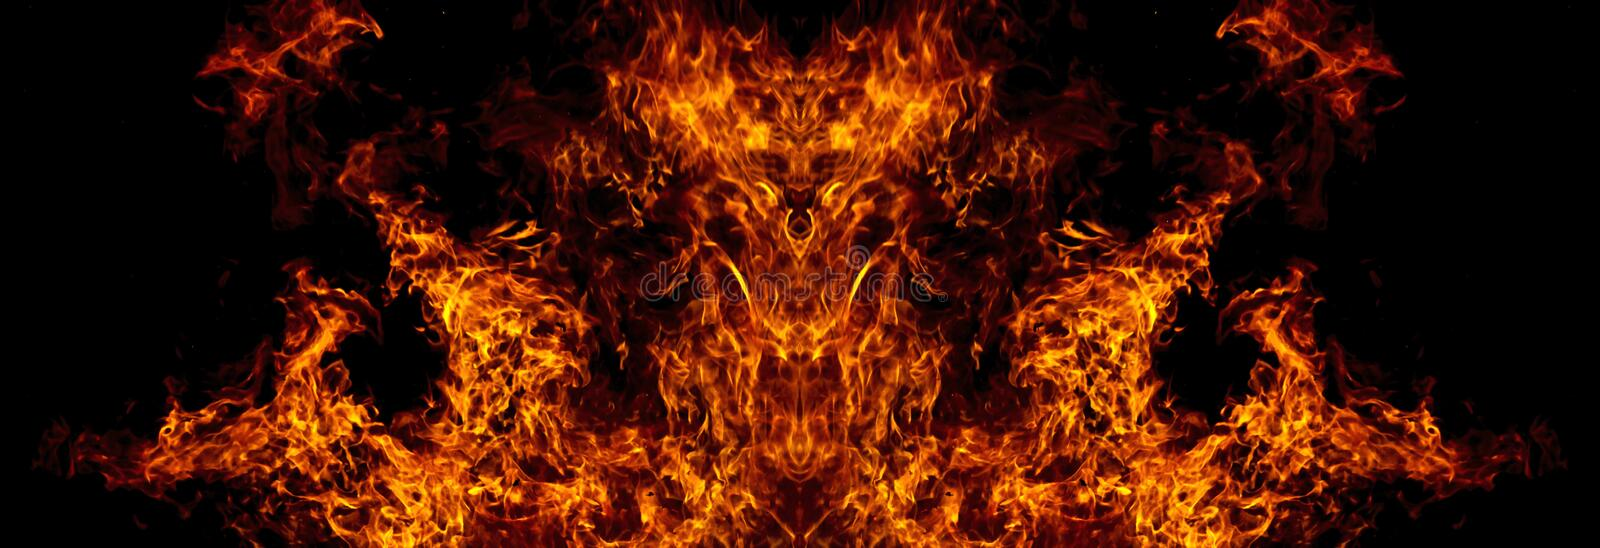 Demon from the fire. A nightmare, a symbol of evil, aggression stock illustration